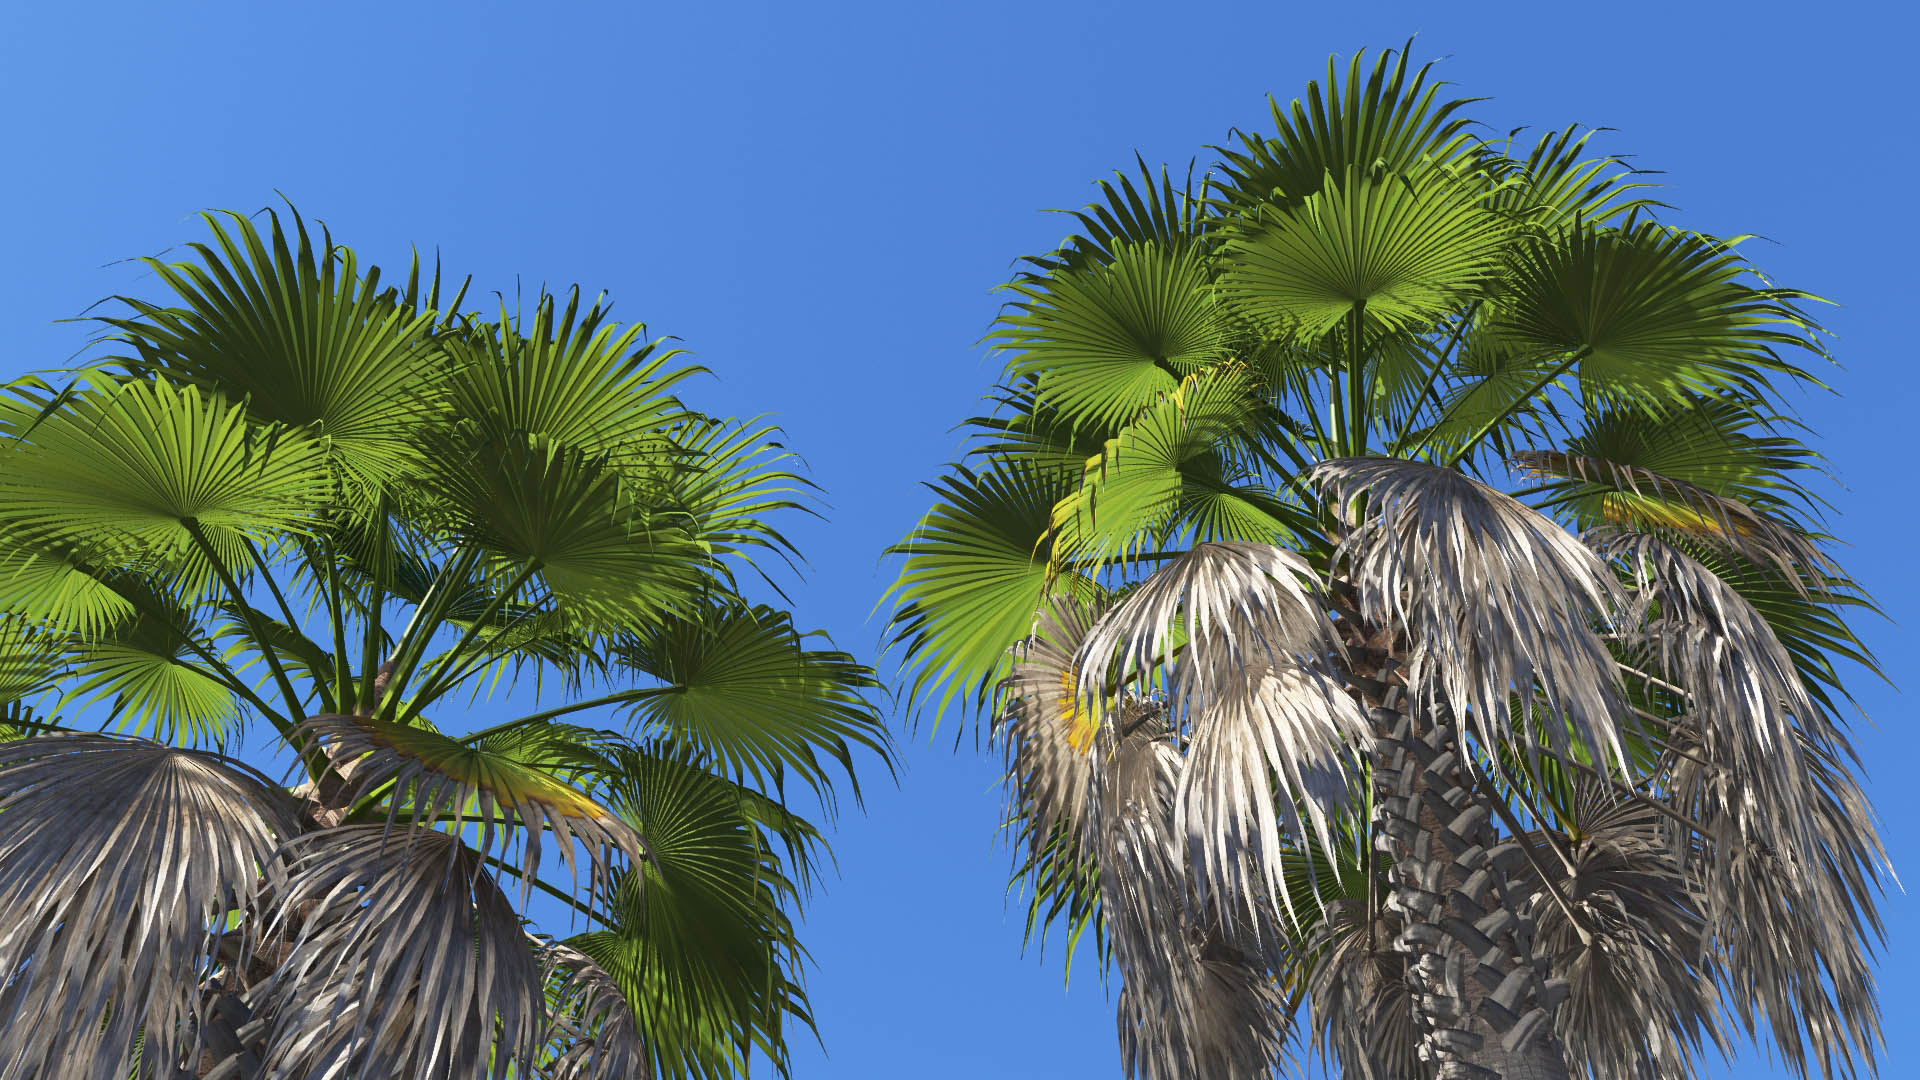 3D model of the California fan palm Washingtonia filifera close-up